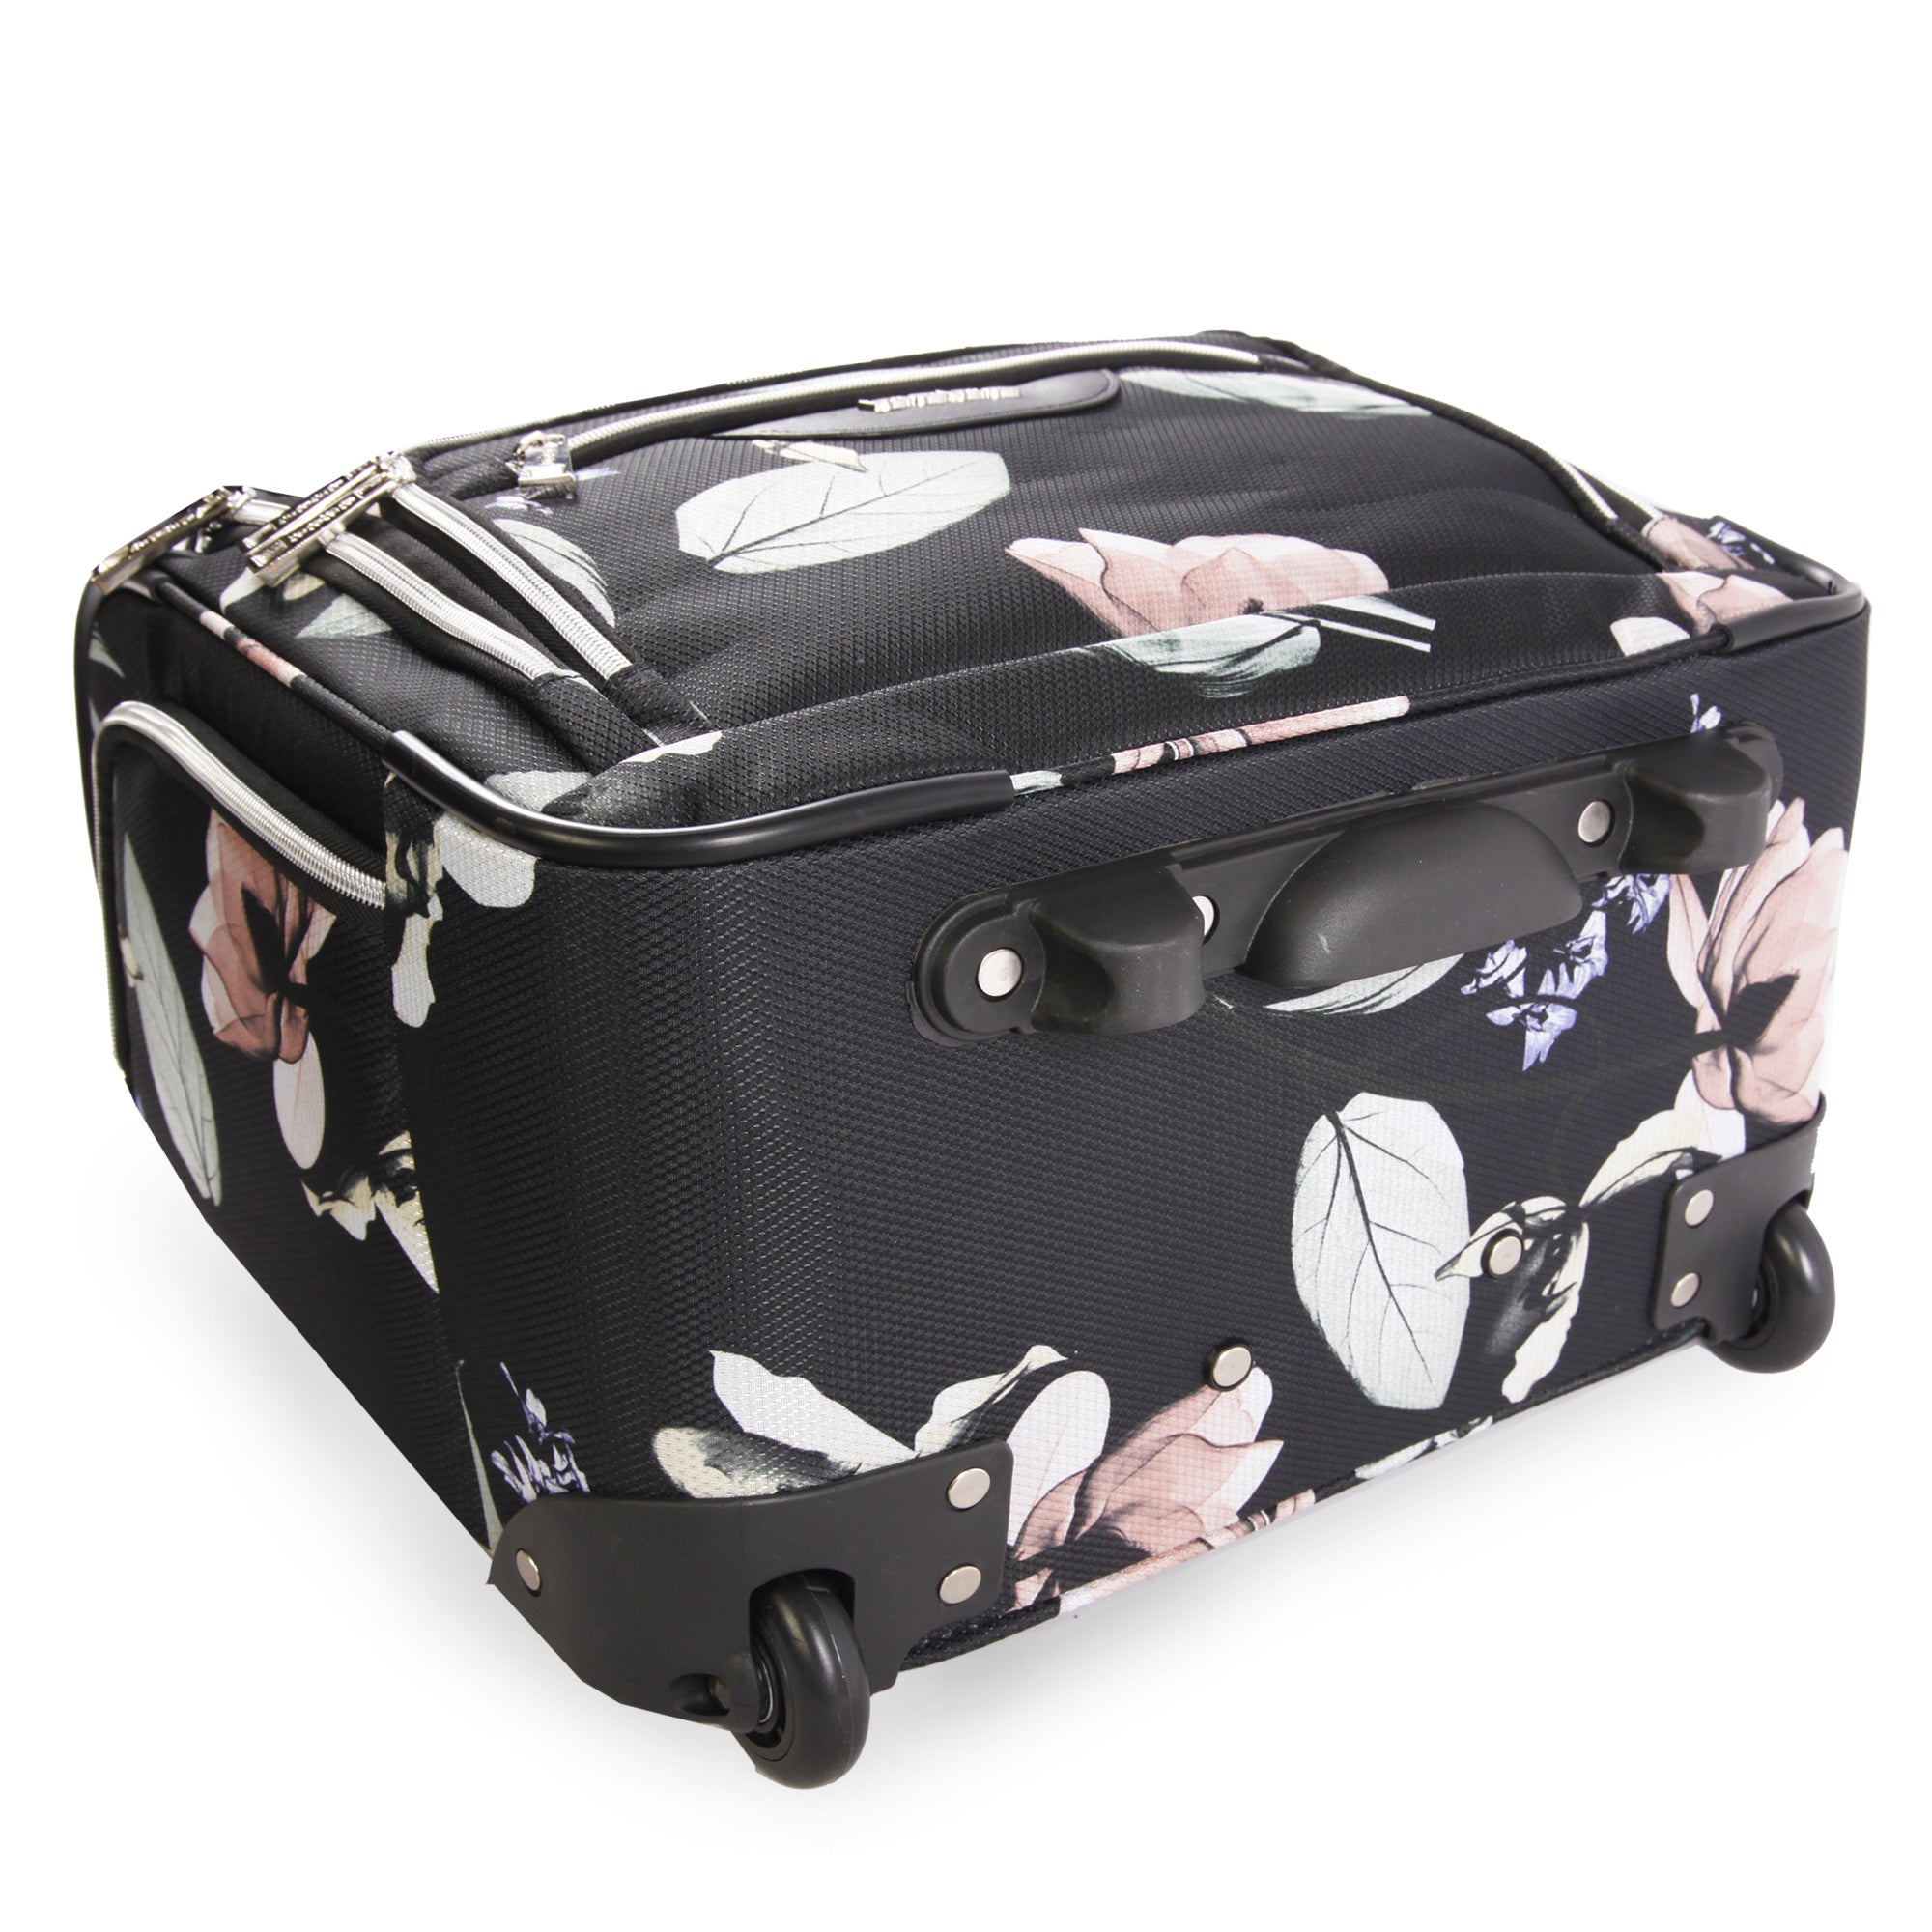 cacdaffc6 Shop Bebe Valentina 16-inch Under the Seat Rolling Carry-On Tote Bag - Free  Shipping Today - Overstock - 20004136